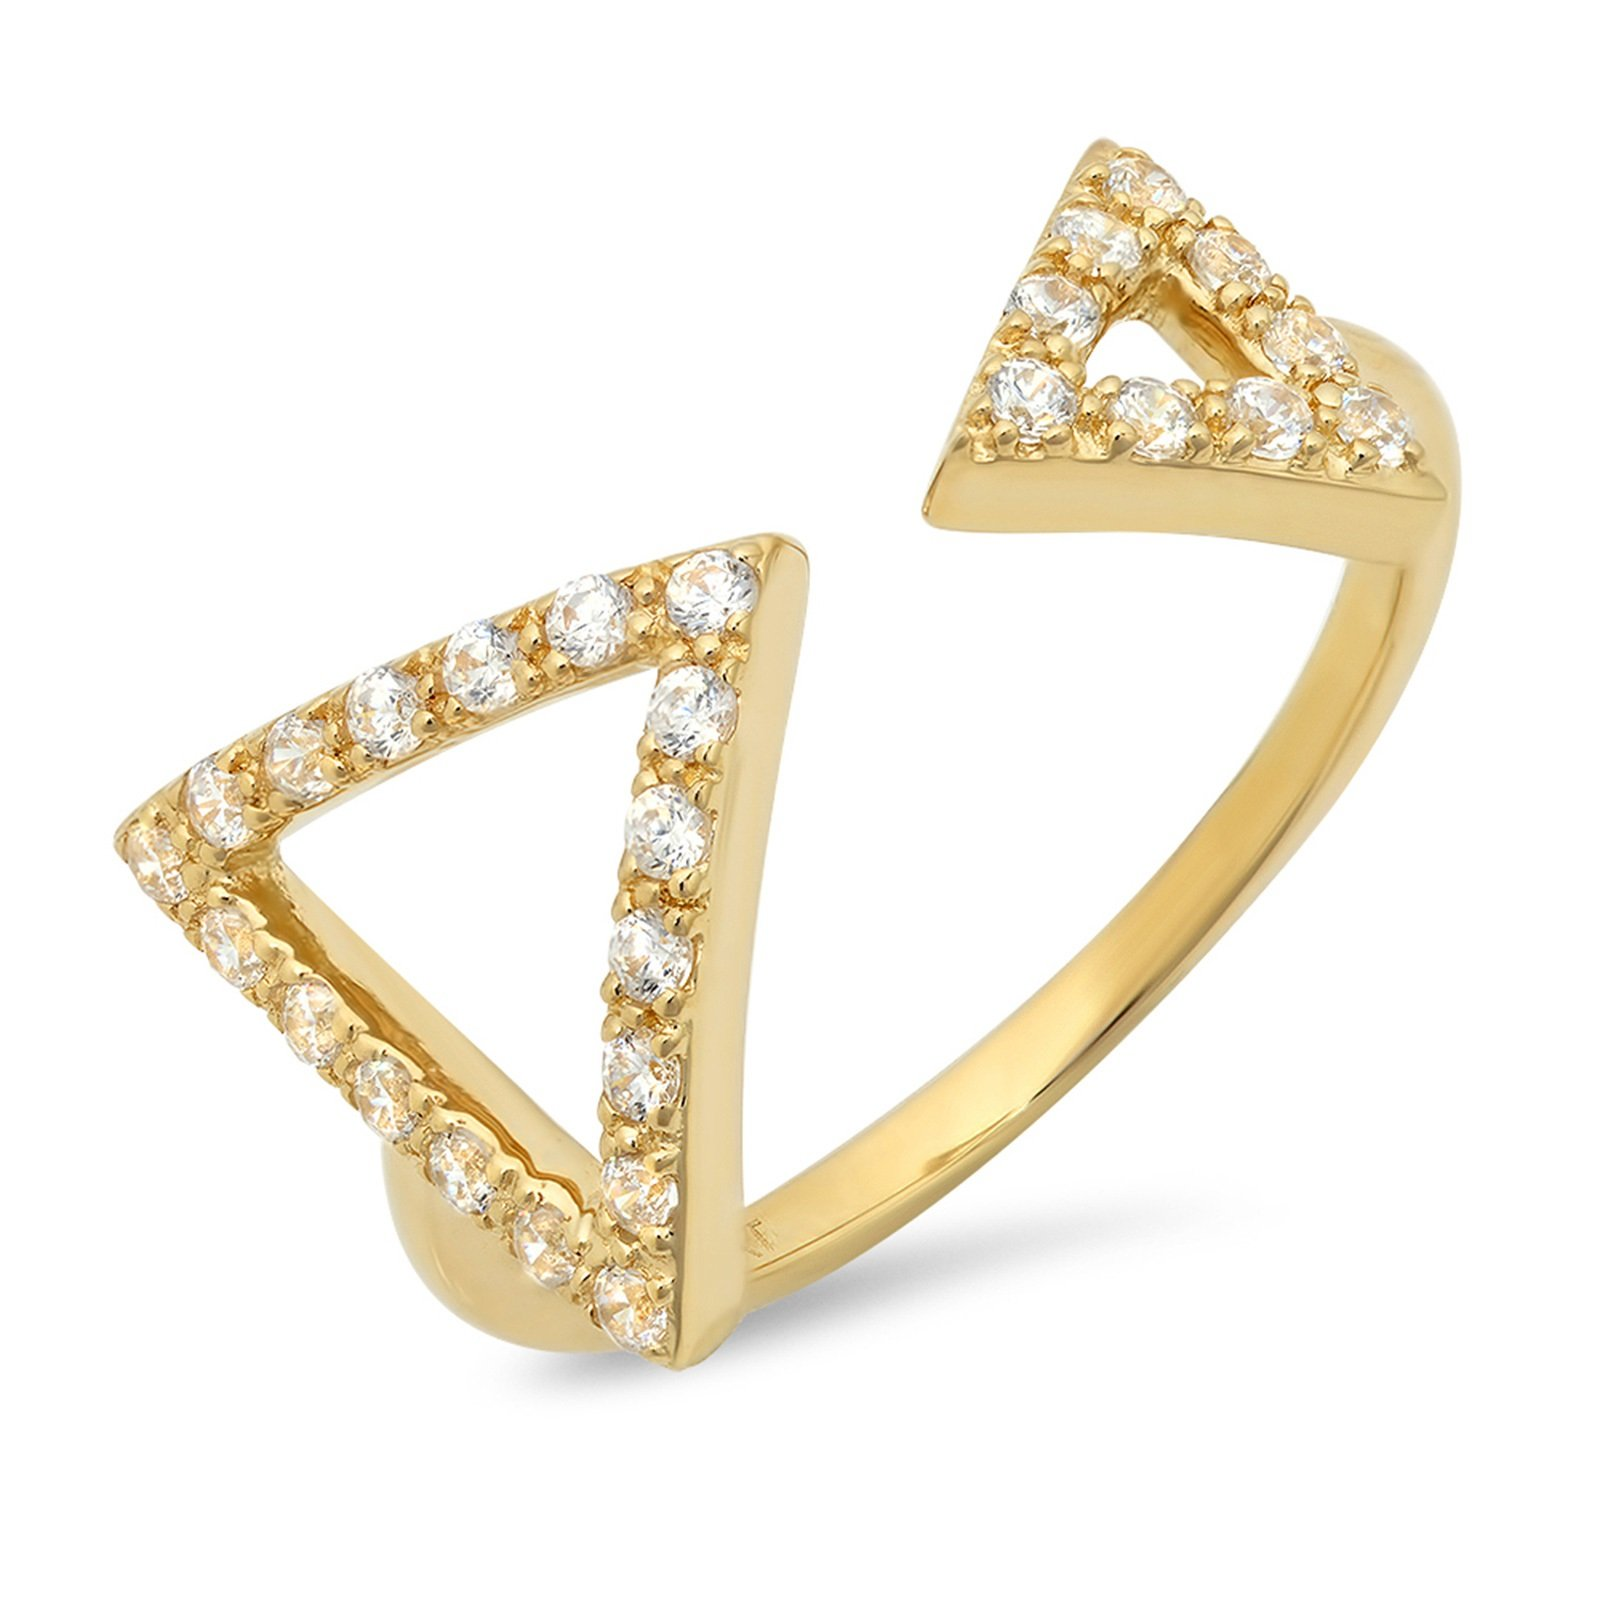 0.16ct Round Cut Pave Engagement Contemporary Arrow Design Ring Band 14k Yellow Gold, Size 5.75